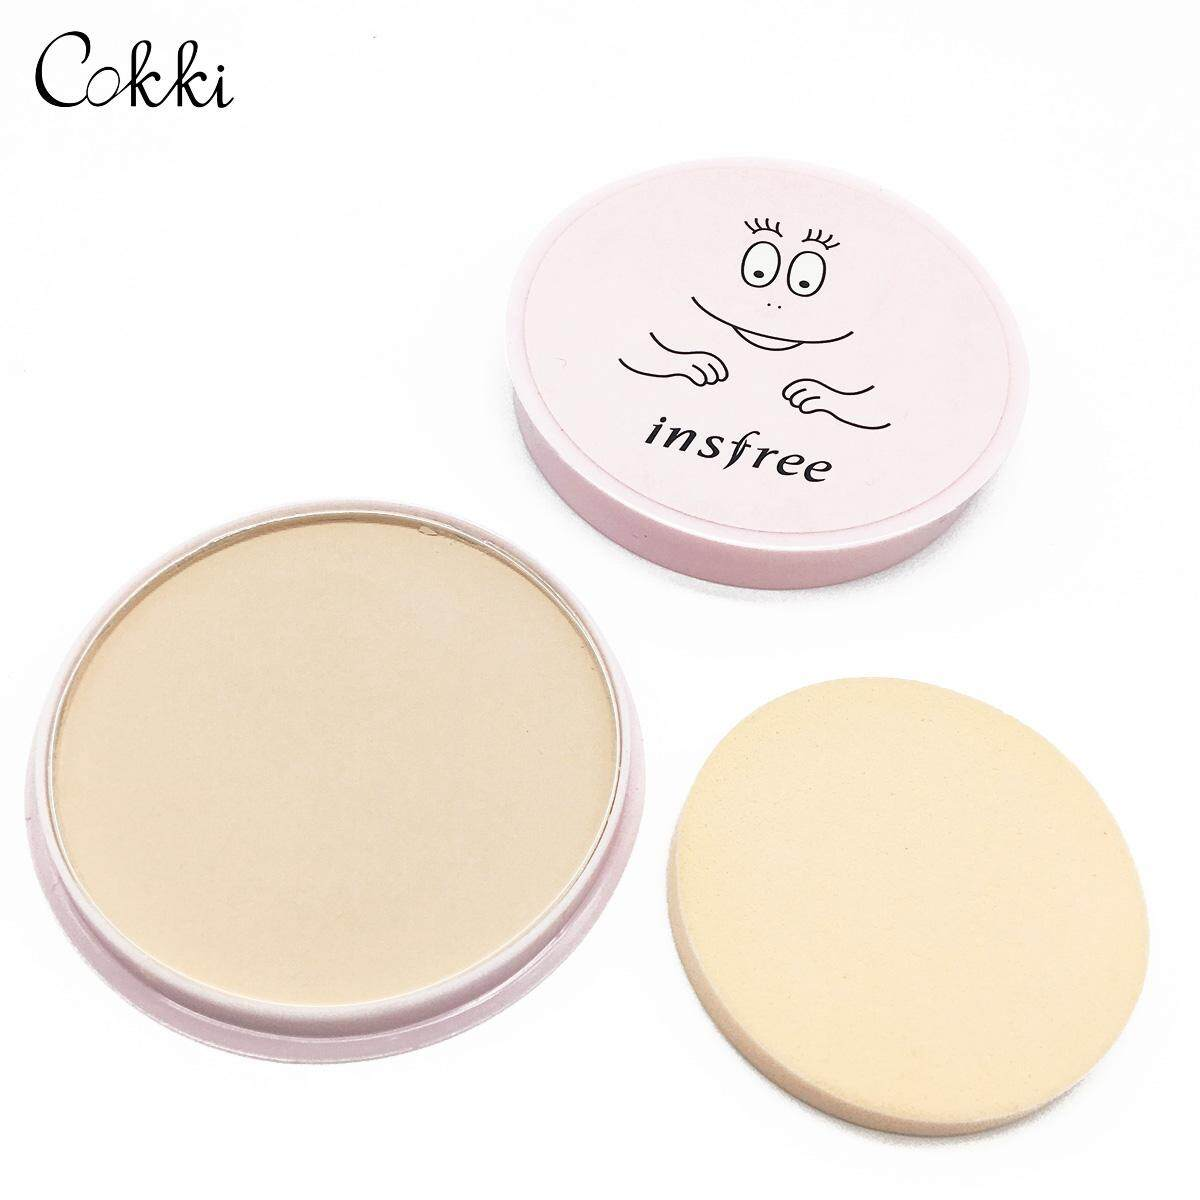 Insfree  In402 Powder Cake Makeup Cover Concealer And Dot Bottom Makeup Waterproof Not To Remove Makeup Powder-Cokkicosmtic ควบคุมน้ำมัน น่ารัก ใช้แล้วหน้าขาว ปกปิดดี.